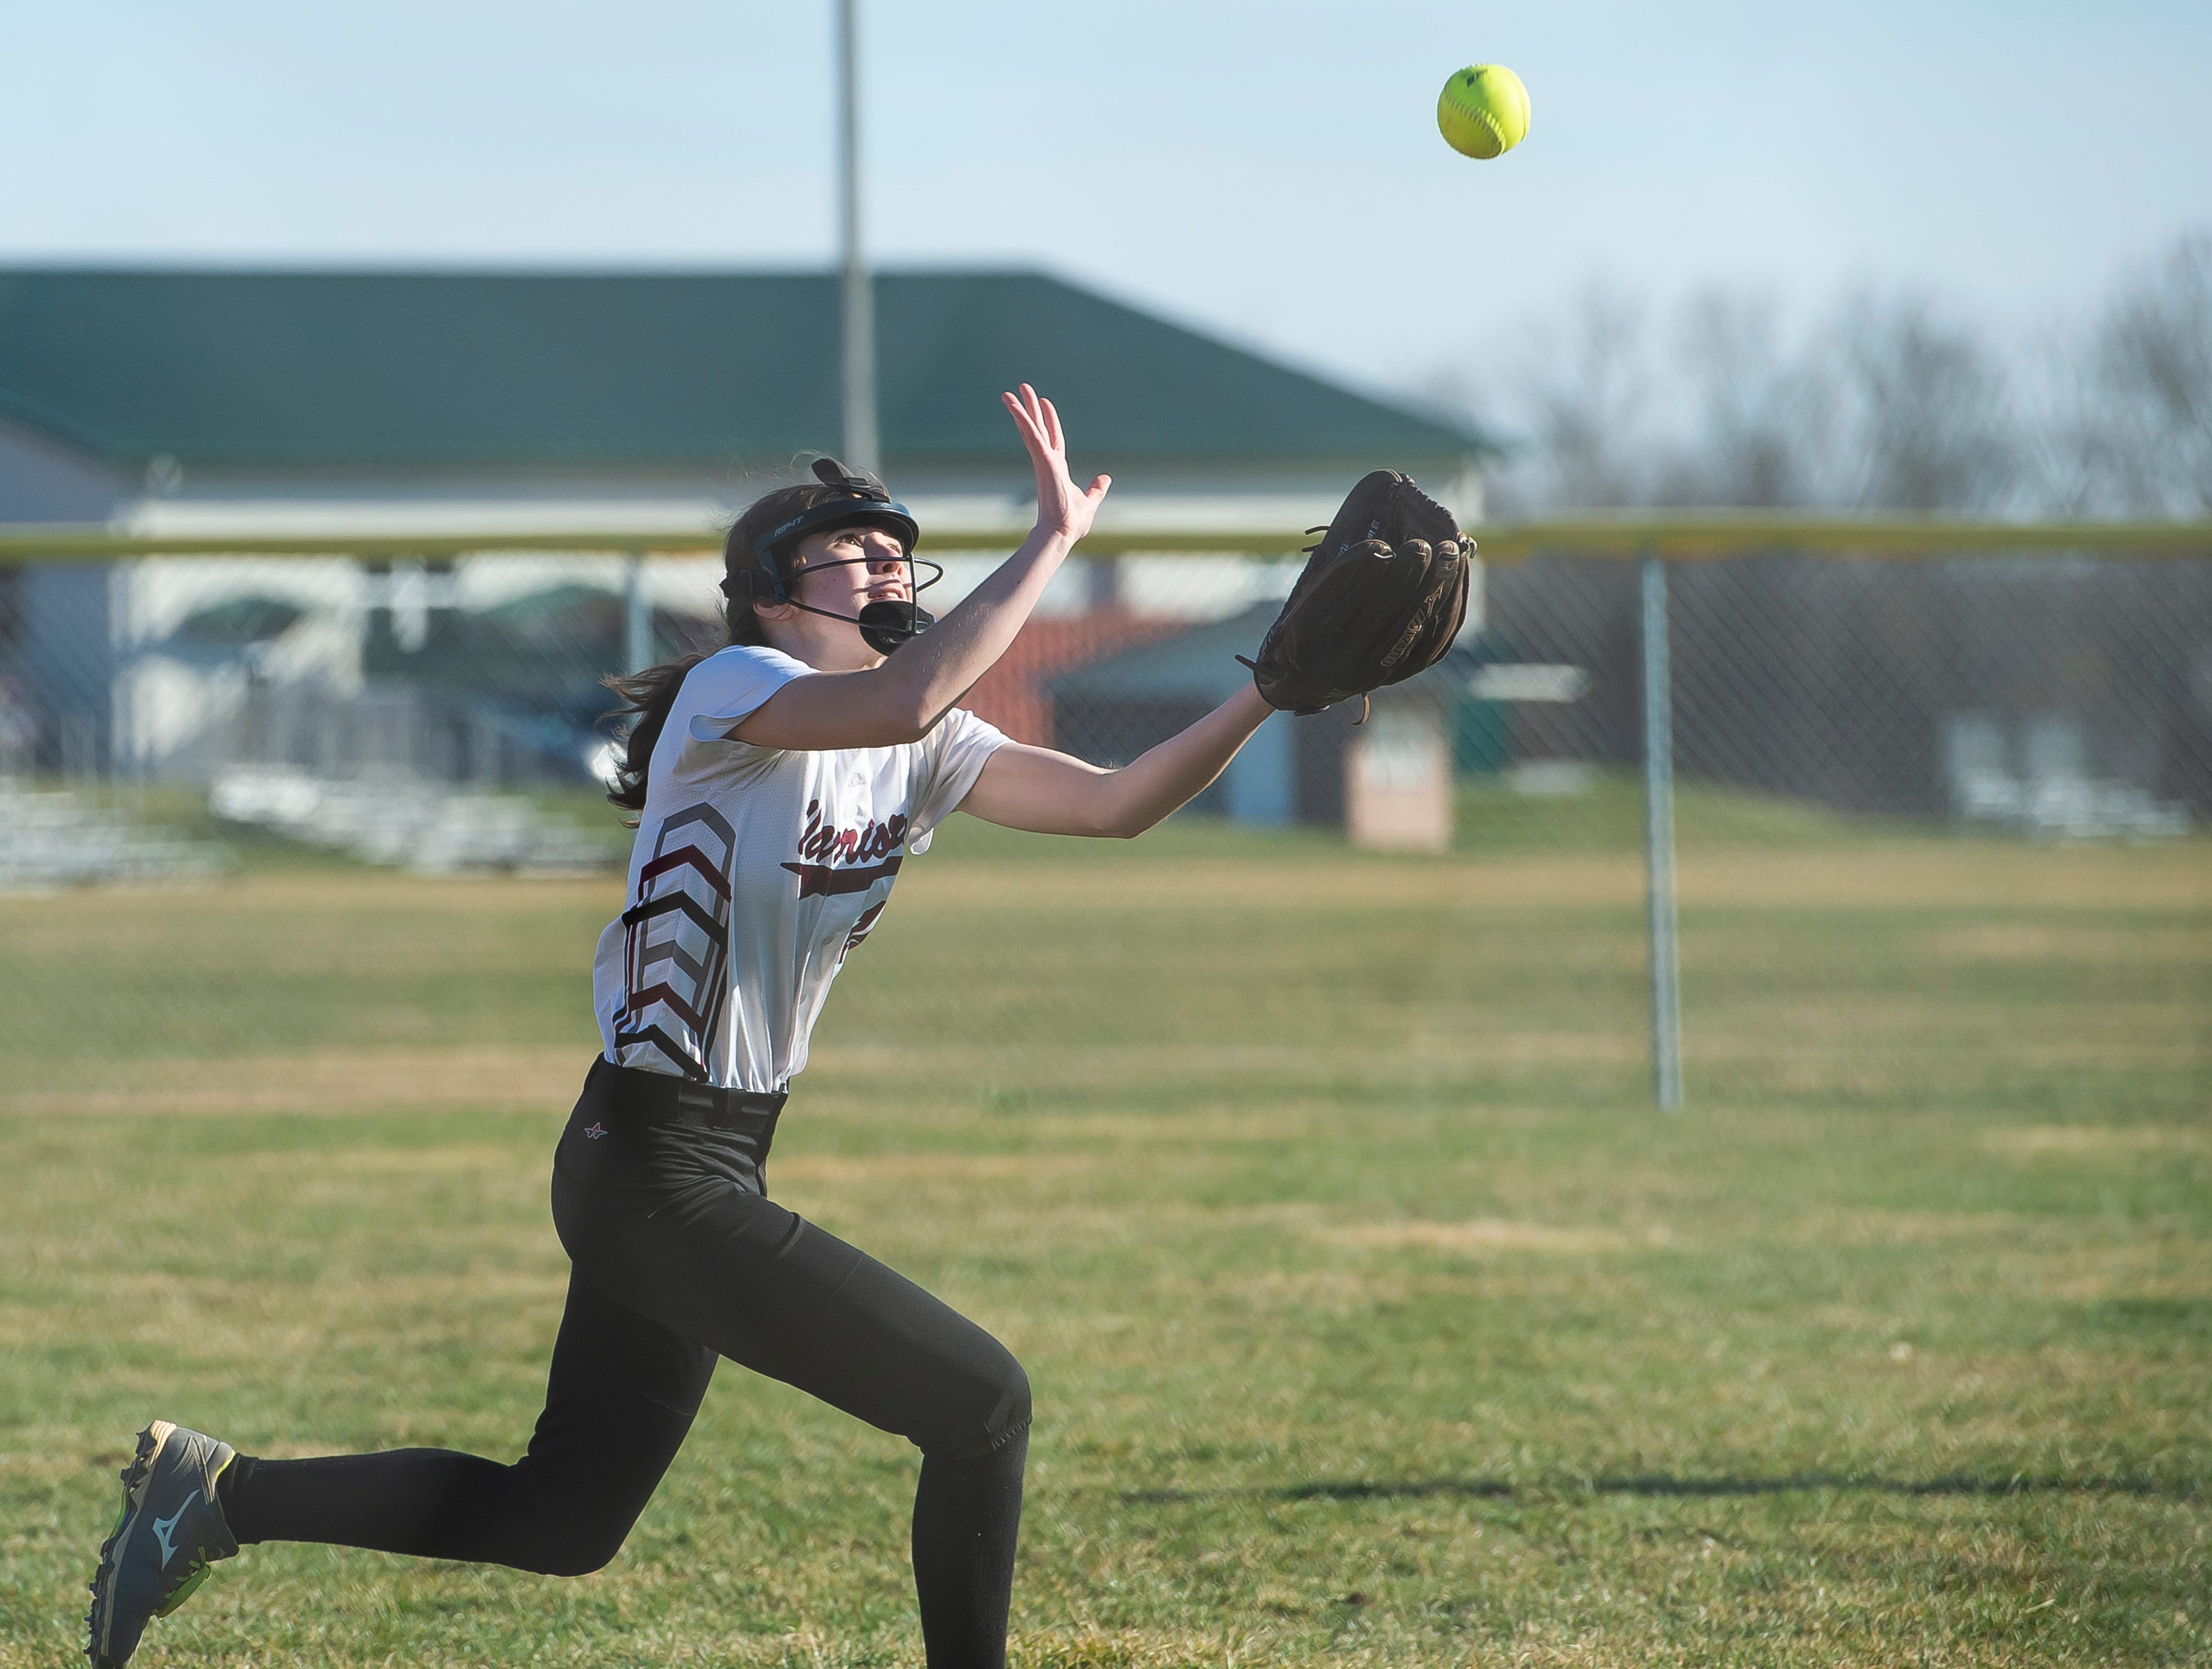 Gettysburg's Hayley Cisney comes up a little short of catching a fly ball during a YAIAA softball game against Littlestown on Monday, April 1, 2019. The Warriors fell 10-4.